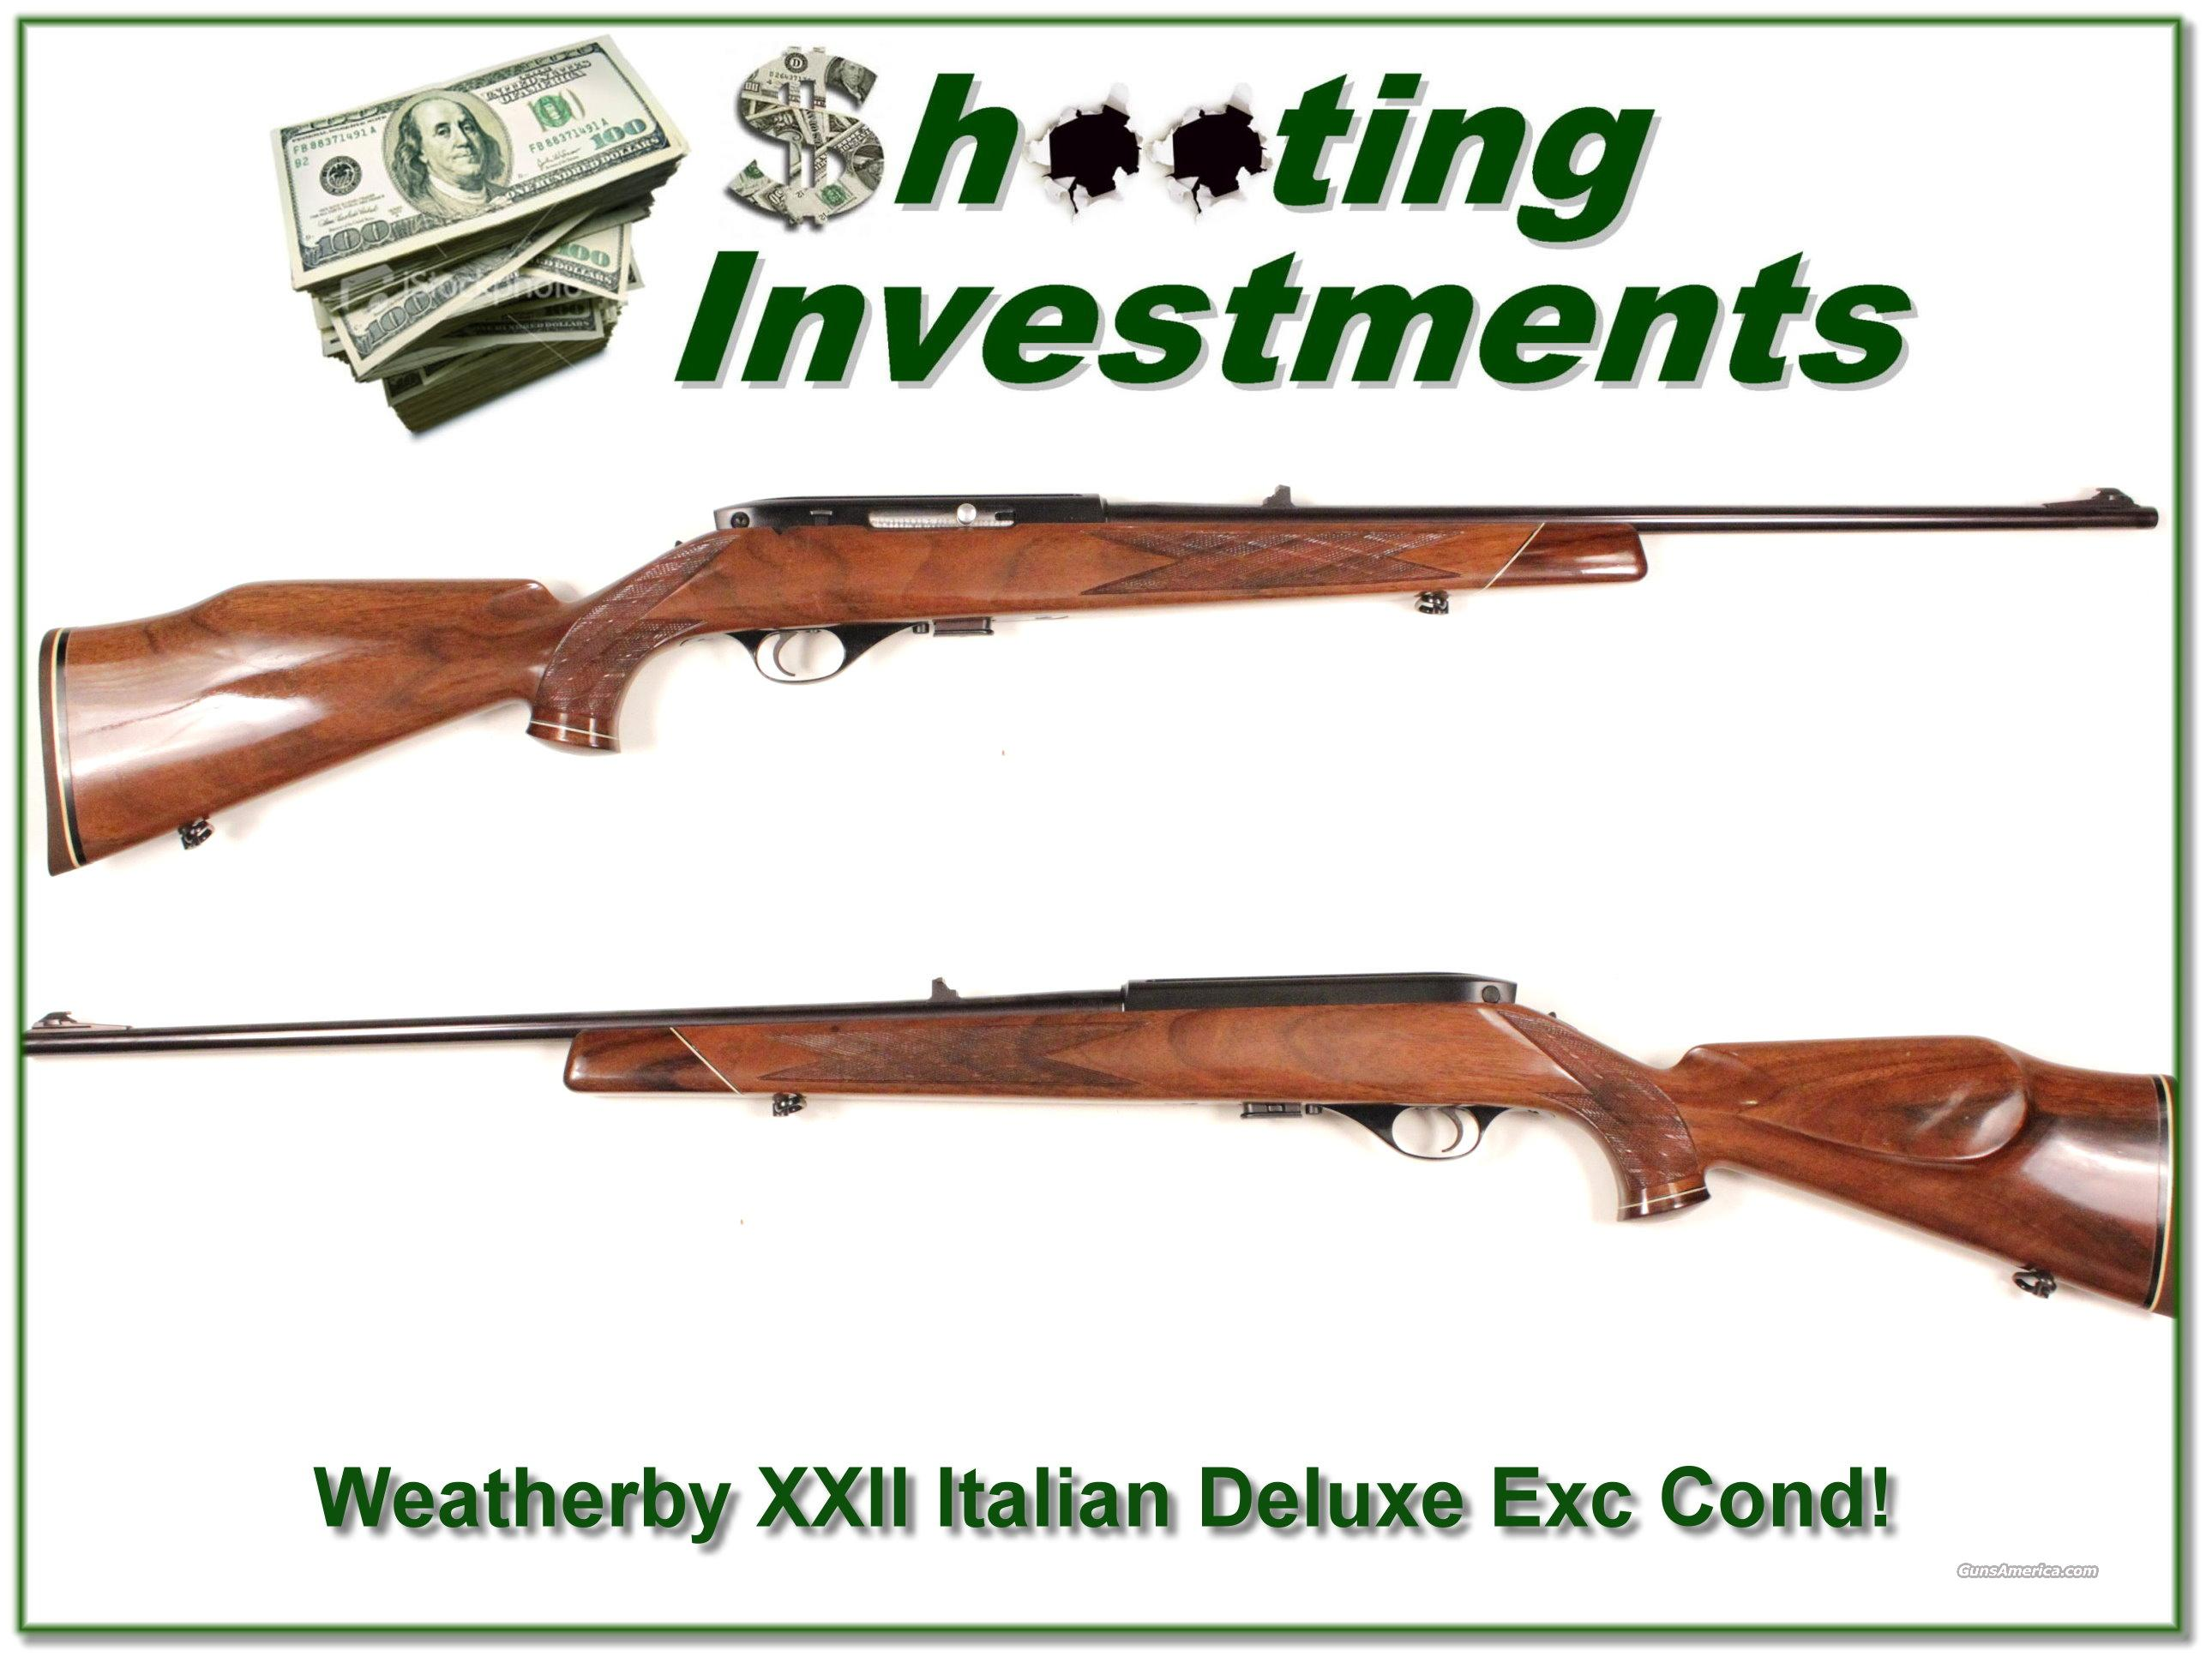 Weatherby XXII 22 auto Italian Deluxe Exc Cond!  Guns > Rifles > Weatherby Rifles > Sporting